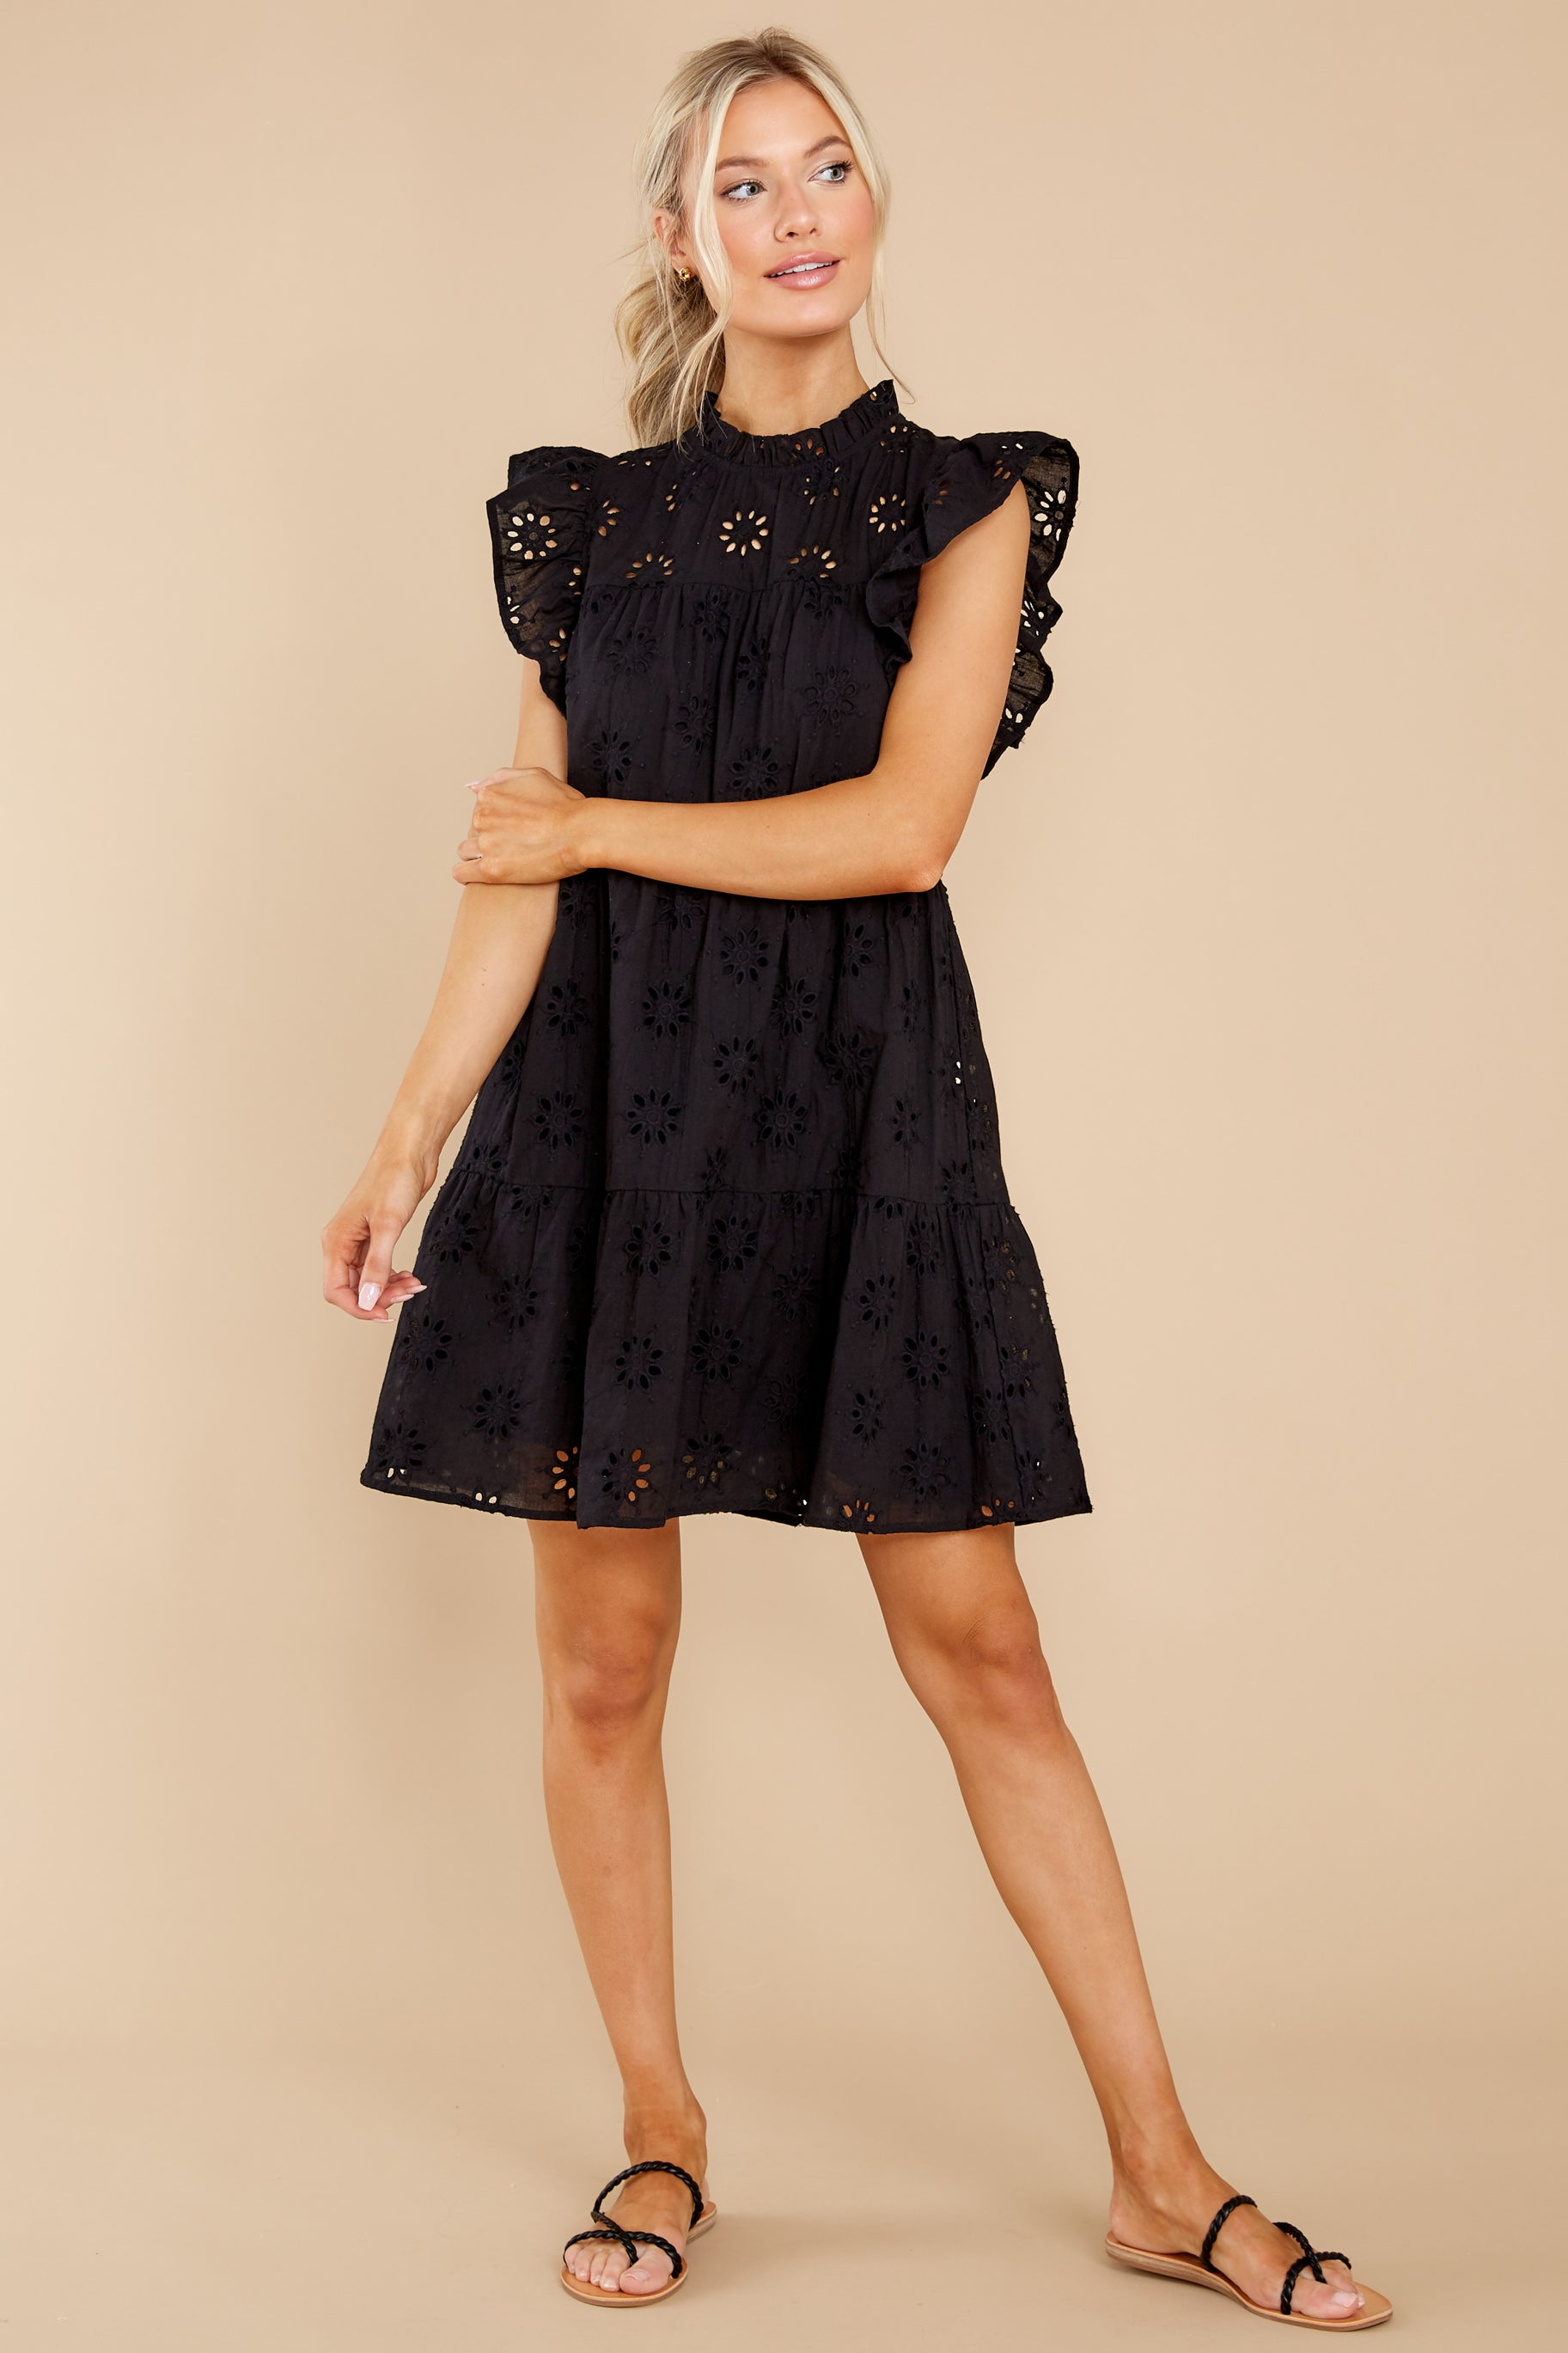 5 So Unreal Black Dress at reddress.com